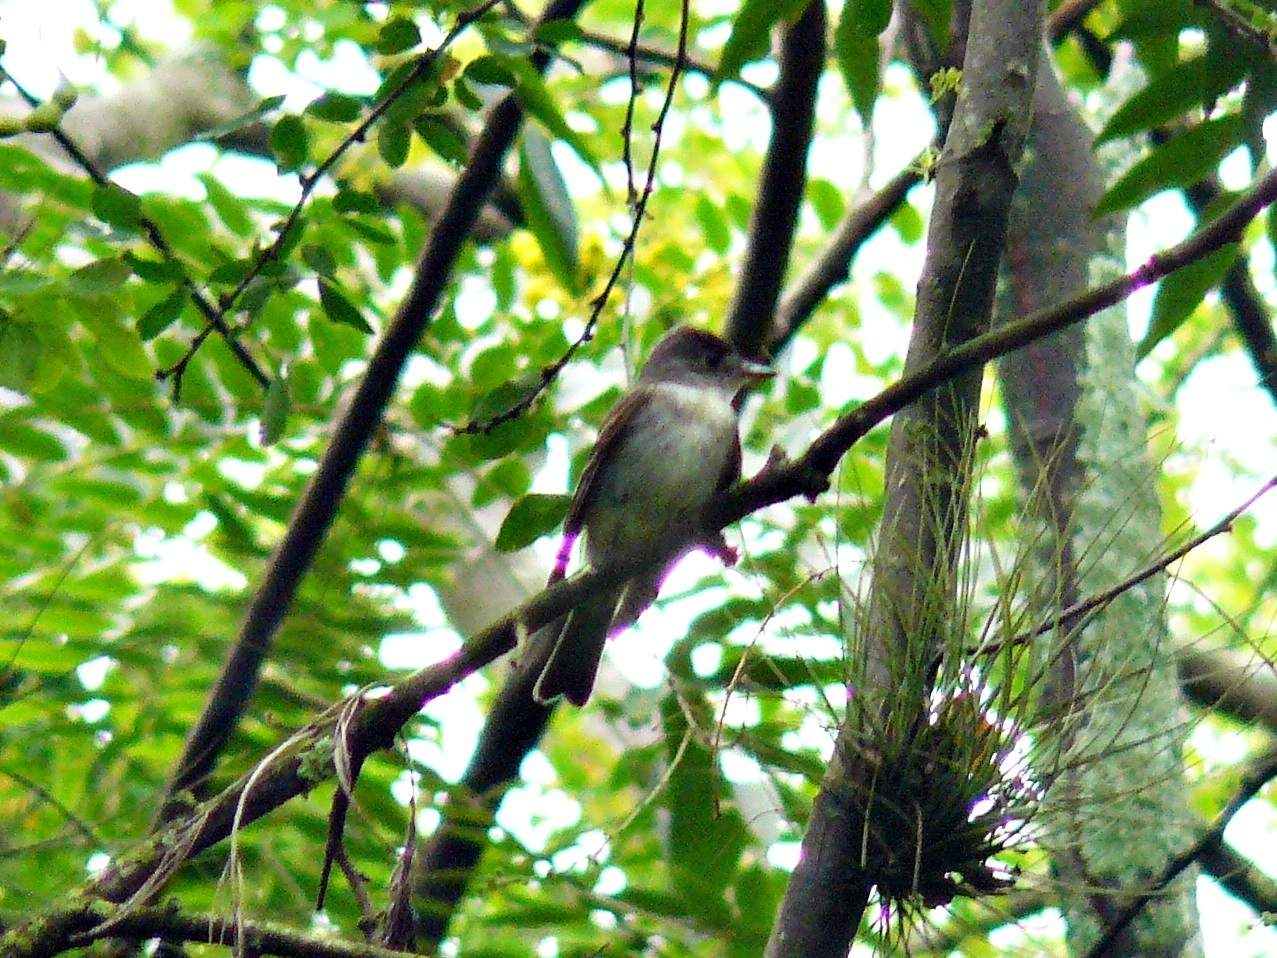 Image of Eastern Wood-Pewee